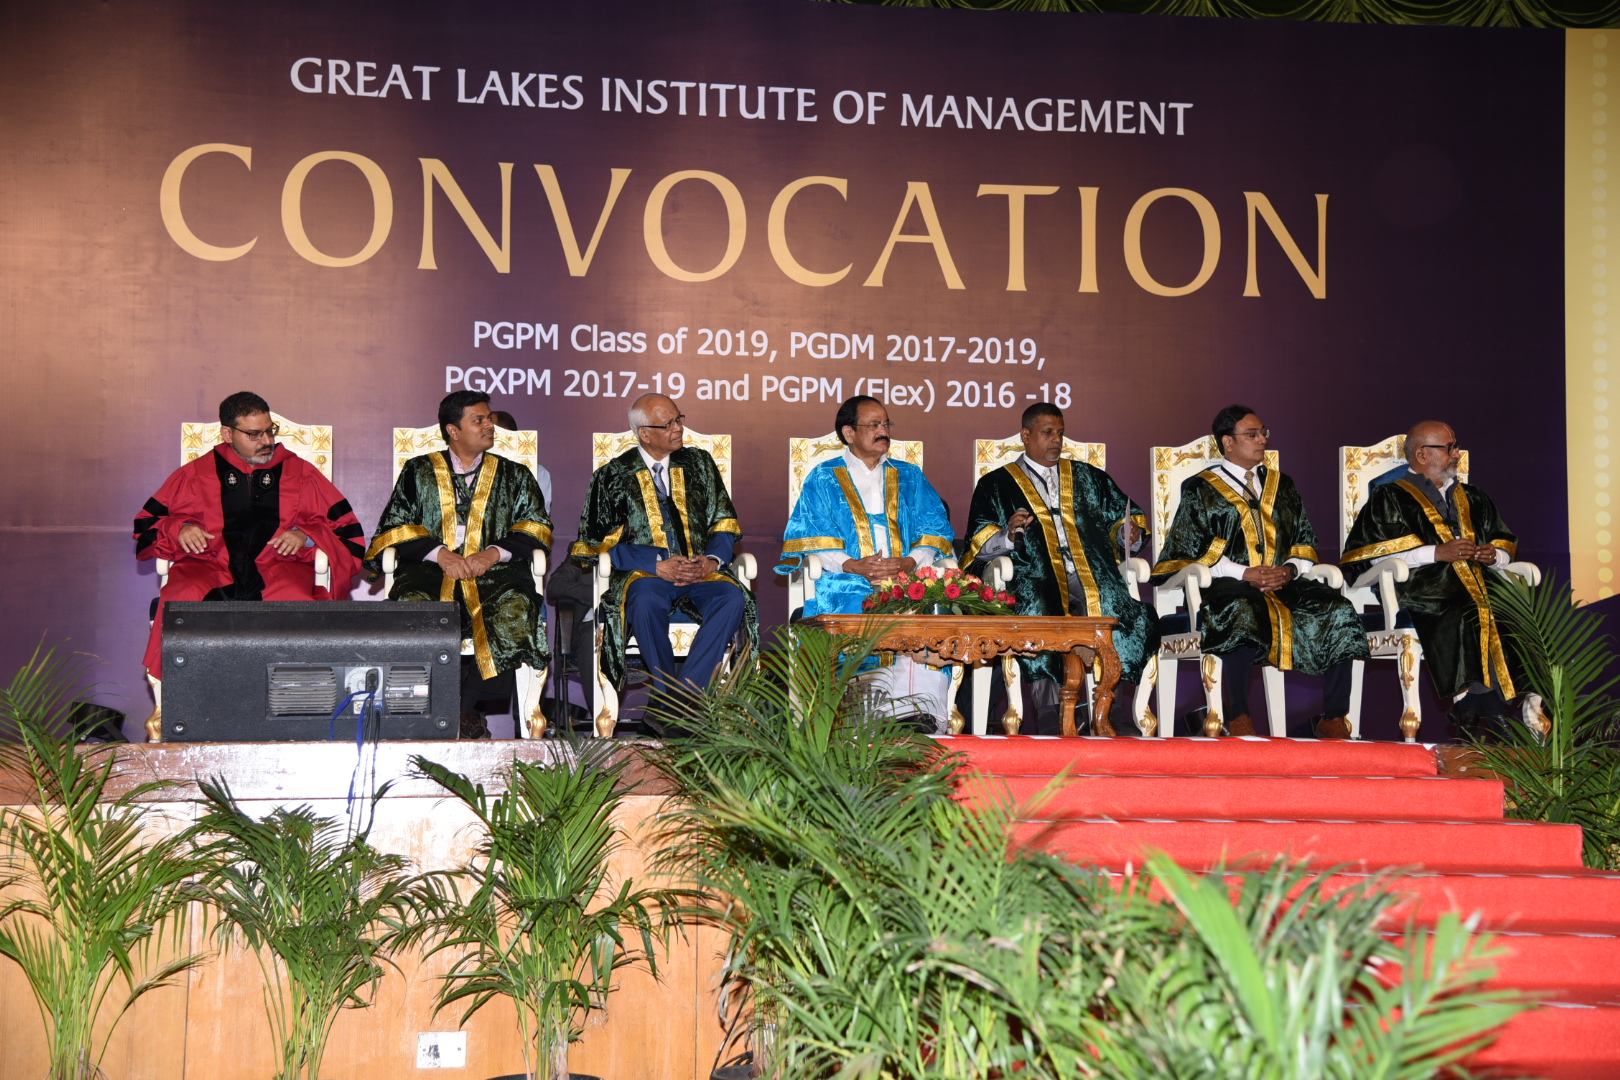 The Vice President, Shri M. Venkaiah Naidu at the Convocation of the Great Lakes Institute of Management, in Chennai on May 21, 2019.